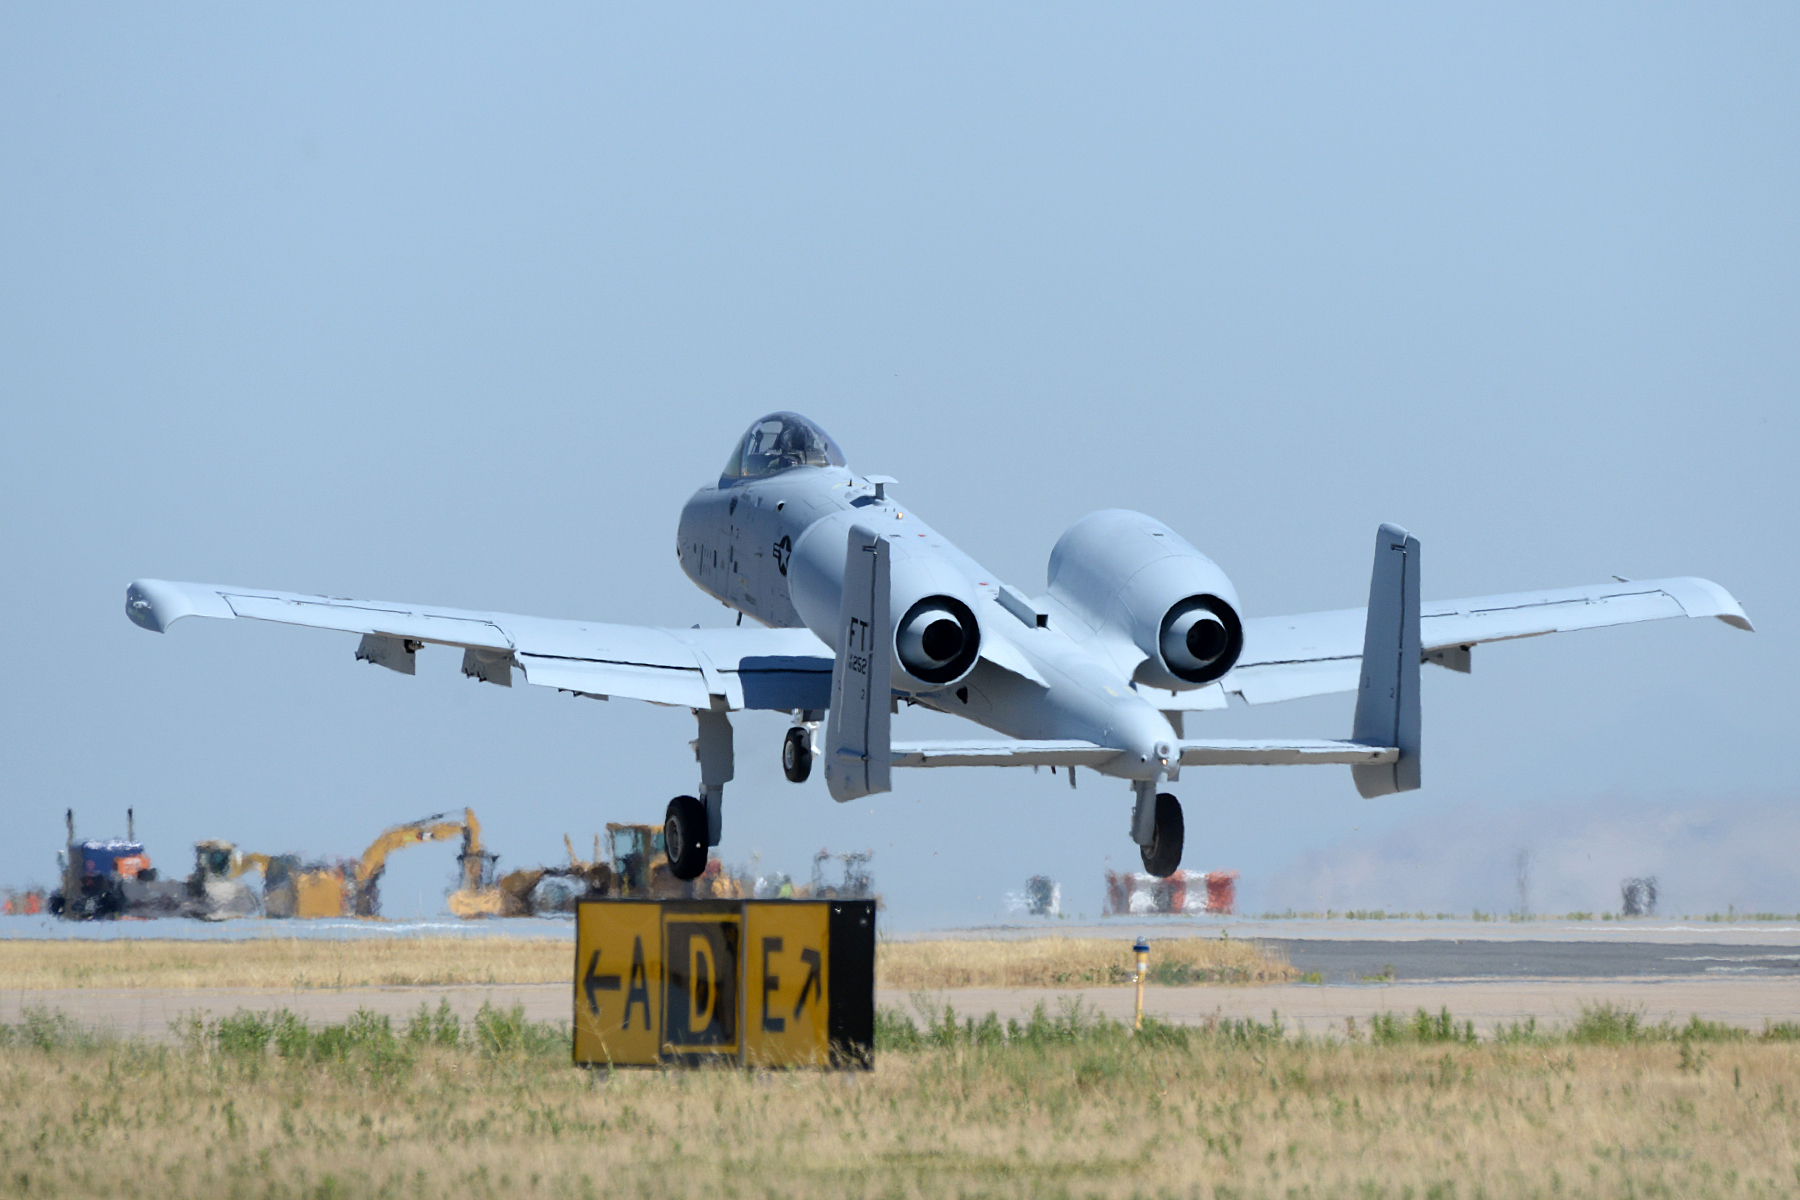 Lt. Col. Ryan Richardson, 514th Flight Test Squadron commander and A-10 test pilot, takes off during a functional check flight of an A-10 Thunderbolt II at Hill Air Force Base, Utah, on July 25, 2019. (Alex R. Lloyd/U.S. Air Force)